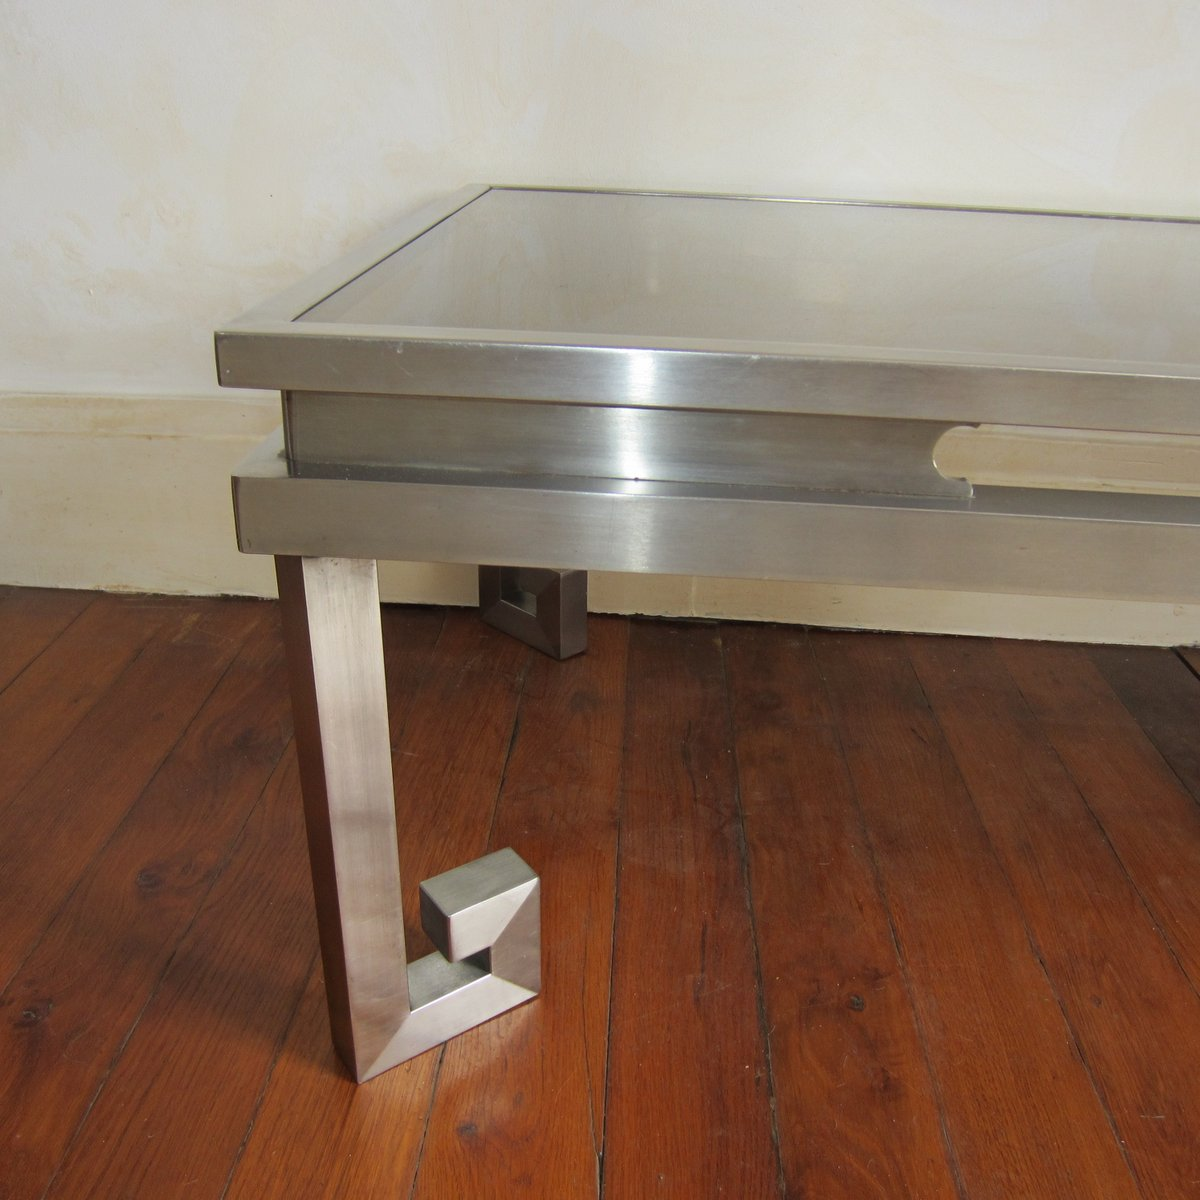 Stainless Steel Coffee Table: Brushed Stainless Steel Coffee Table, 1970s For Sale At Pamono